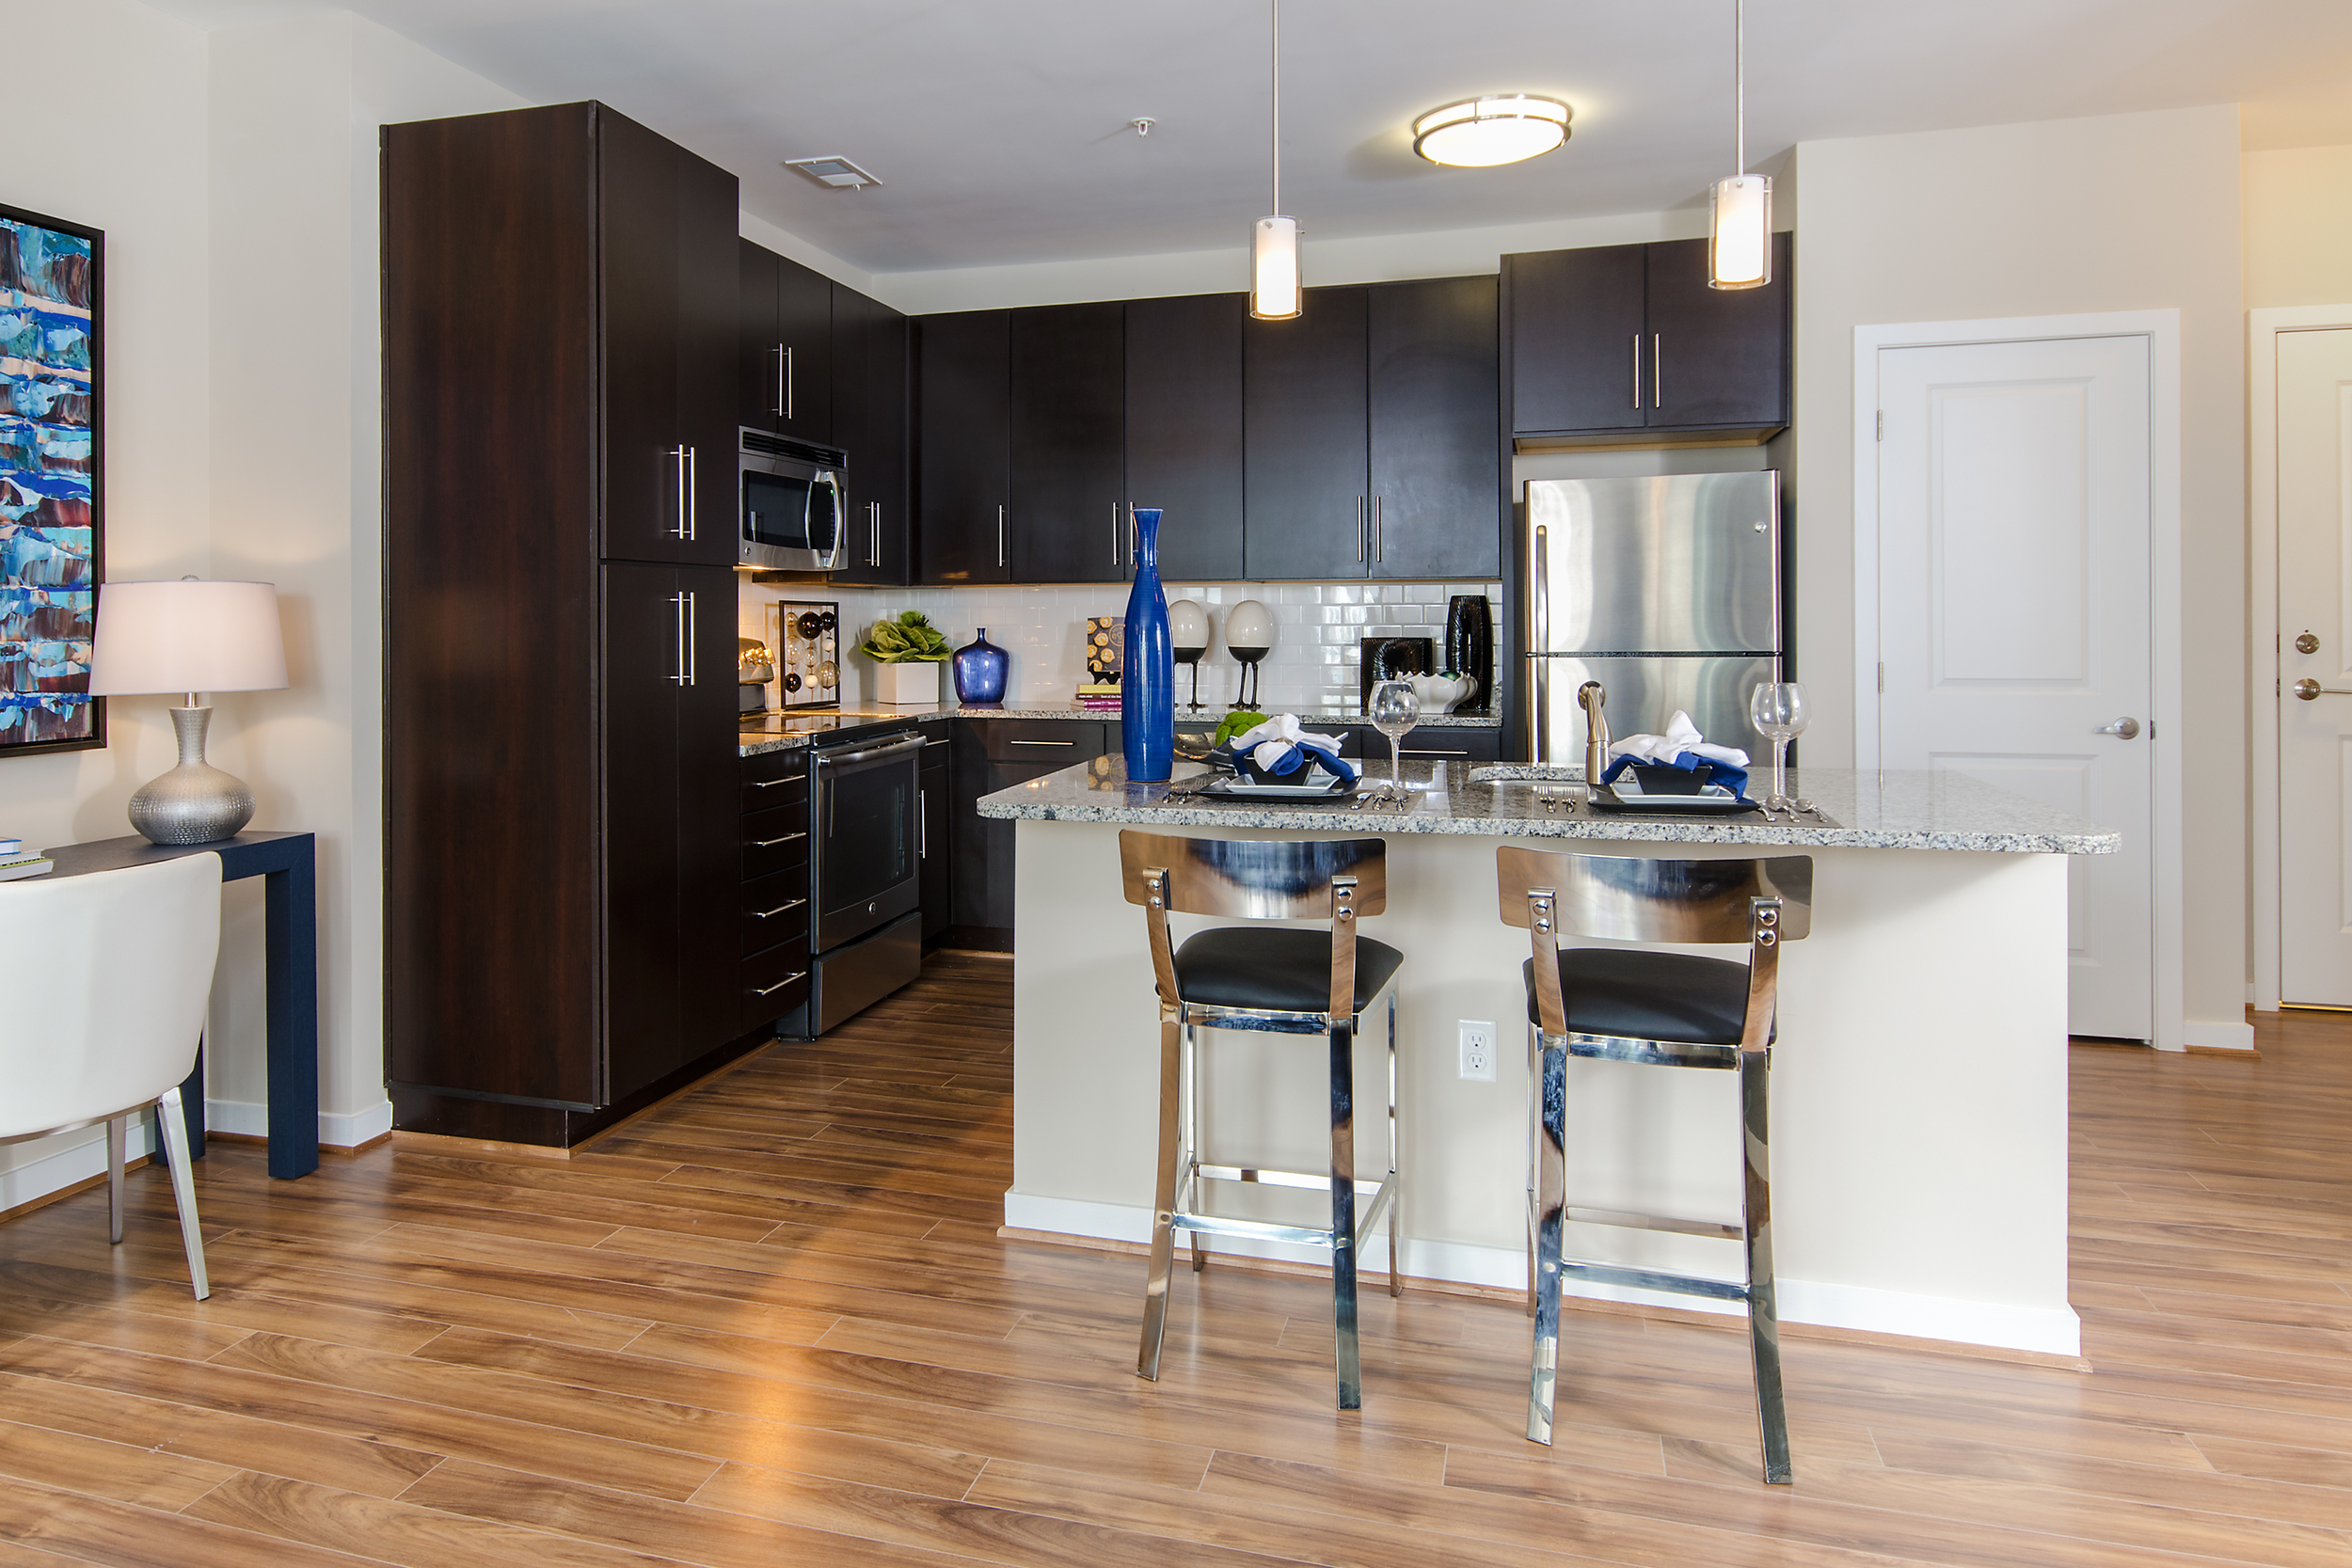 Bell-Del-Ray-Model-Double-Kitchen-2-11-14.jpg